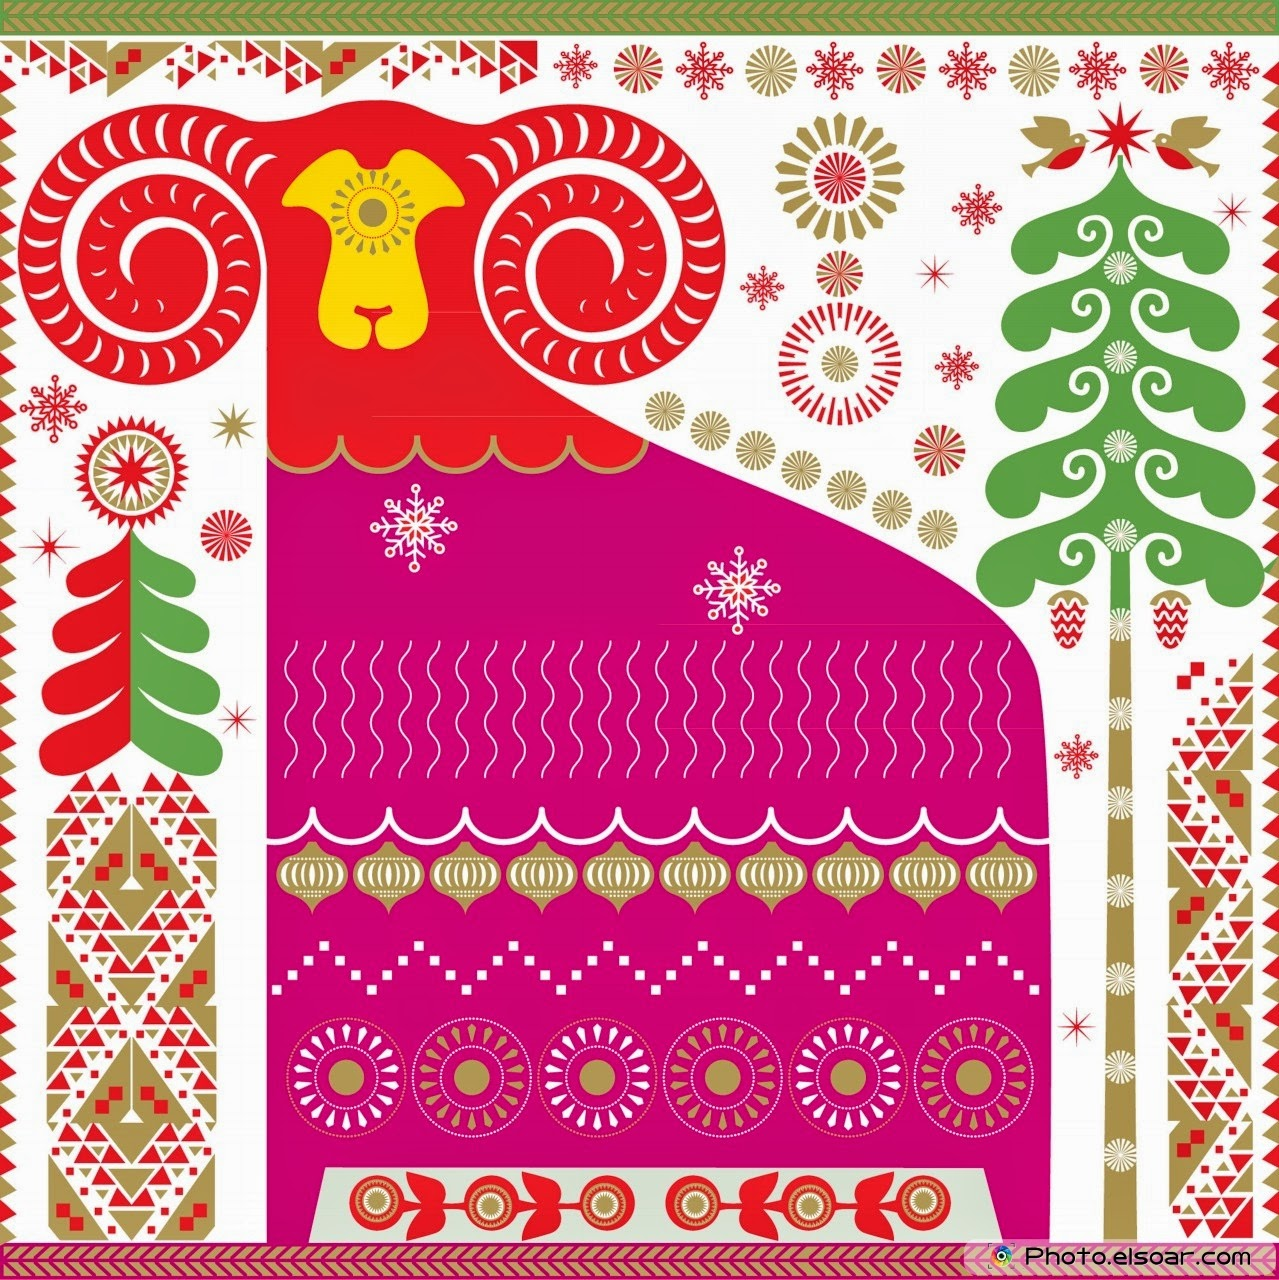 Ascending butterfly celebrating asian lunar new year check out what is your new year tradition butterfly do you celebrate lunar new year if so tag us on a picture of your lucky money envelope this year biocorpaavc